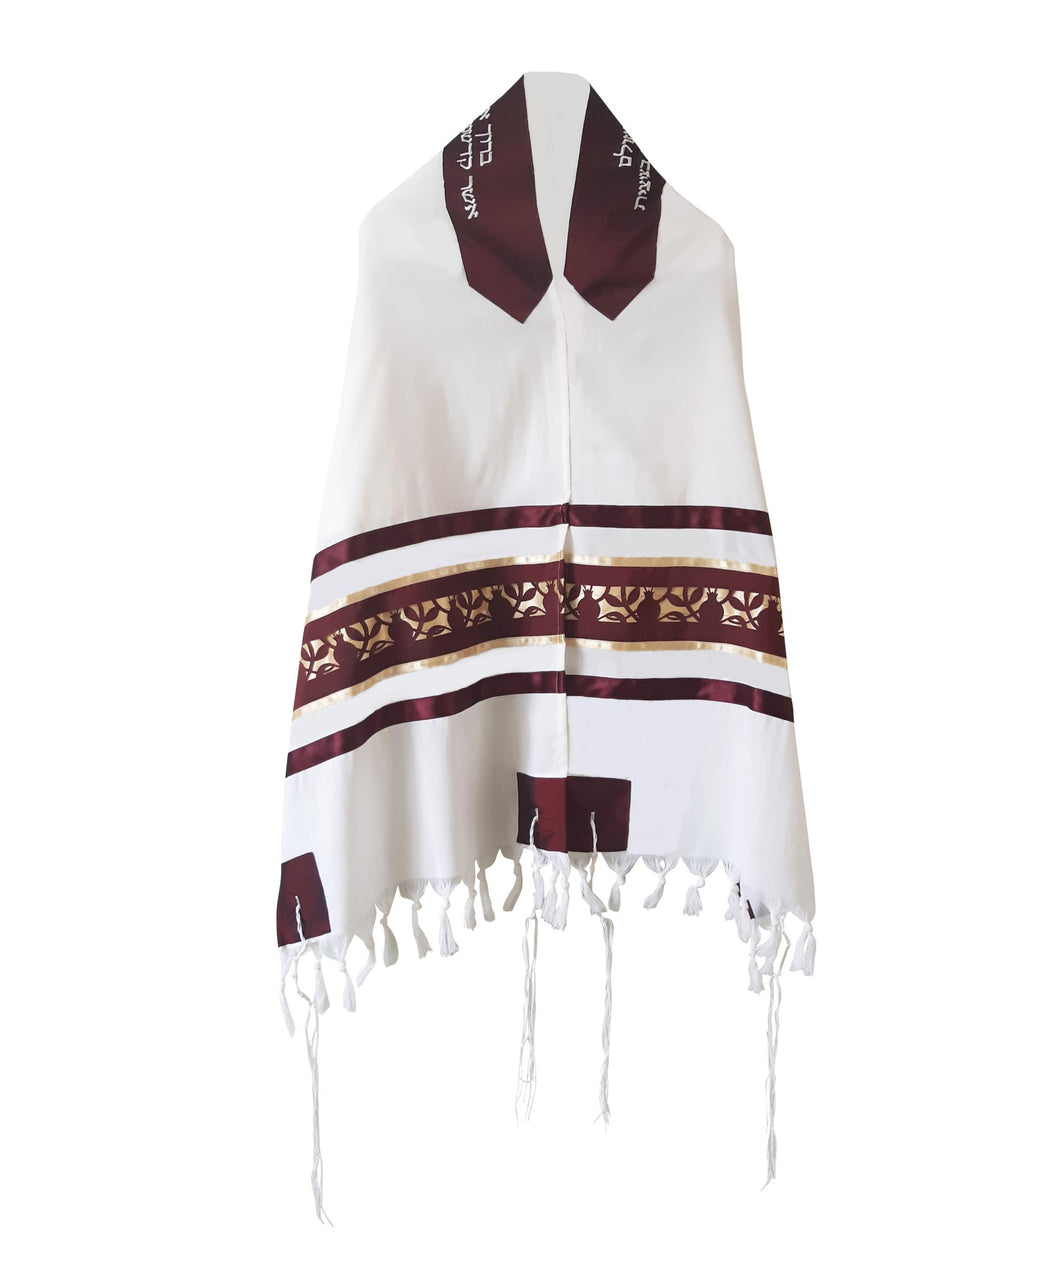 Unique Dark Red Pomegranate Wool Tallit, Bar Mitzvah Tallit Set, Jewish Prayer Shawl